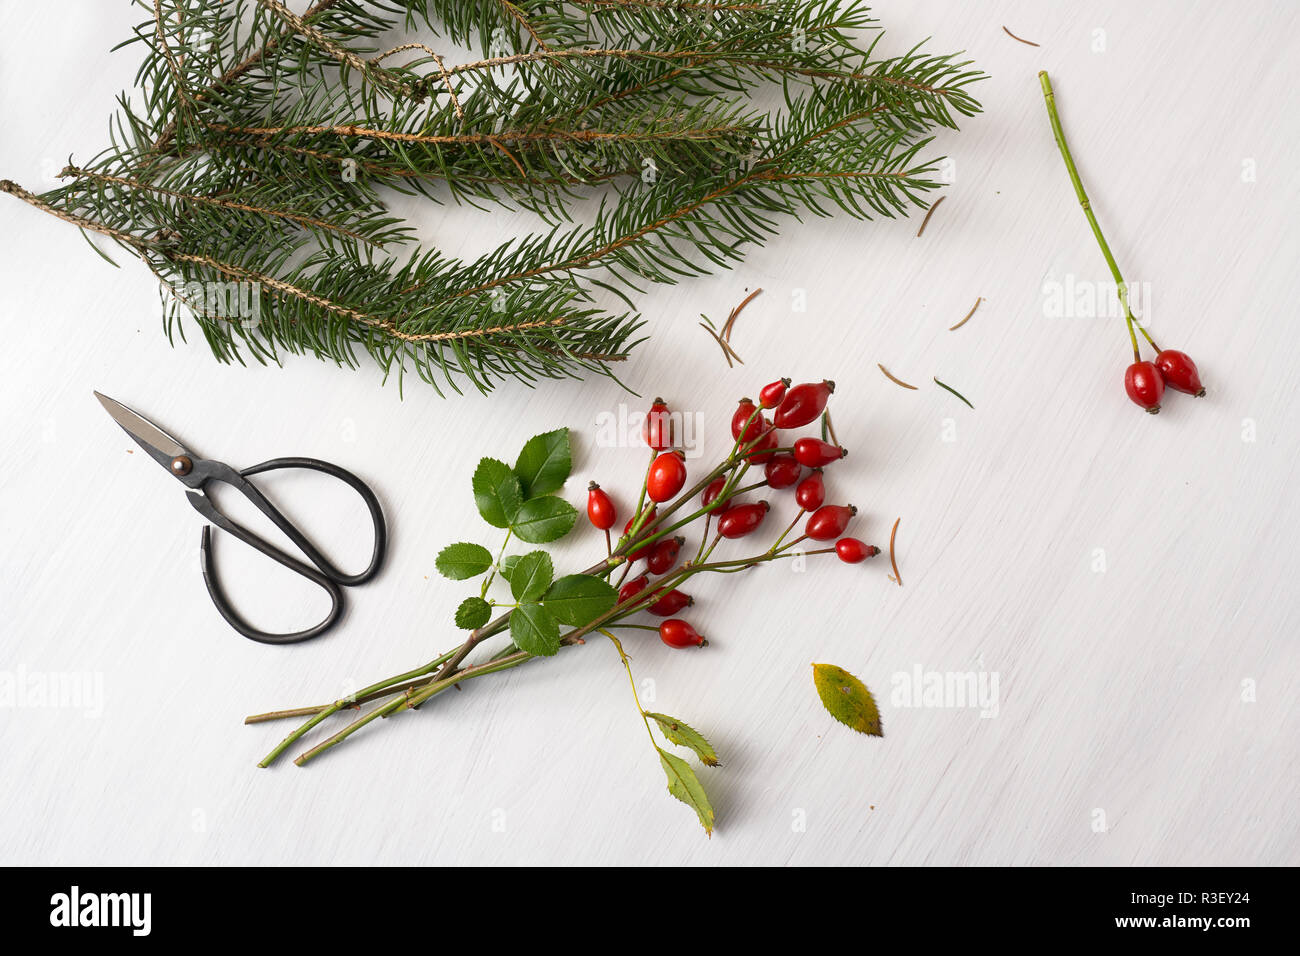 preparing natural christmas decoration with rose hips, fir branches and scissors on a white painted table with copy space, high angel view from above, - Stock Image